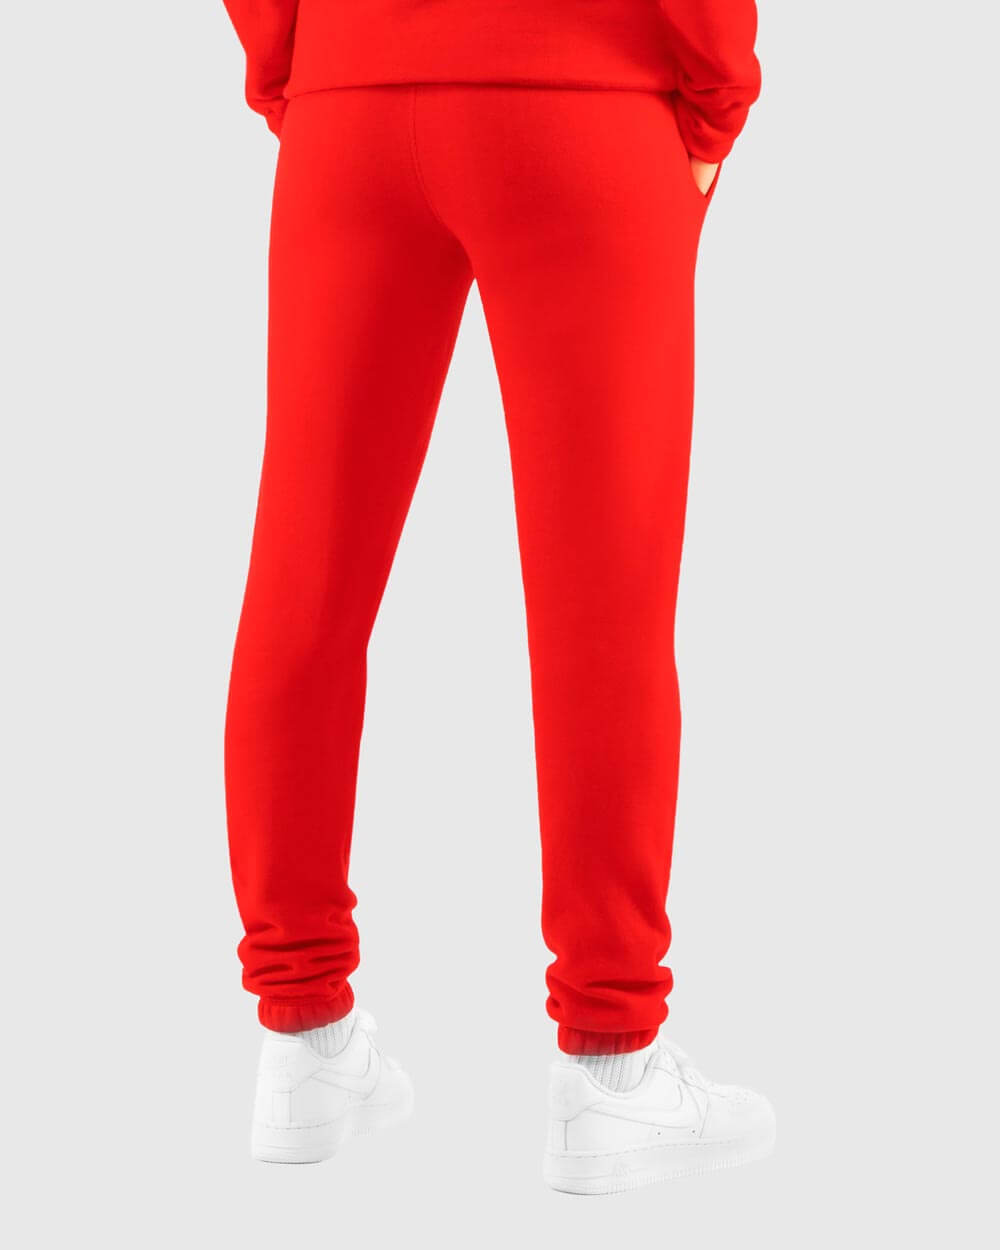 b3bbea4b240 OVO x ROOTS WOMEN'S SWEATPANT - RED – October's Very Own Online US